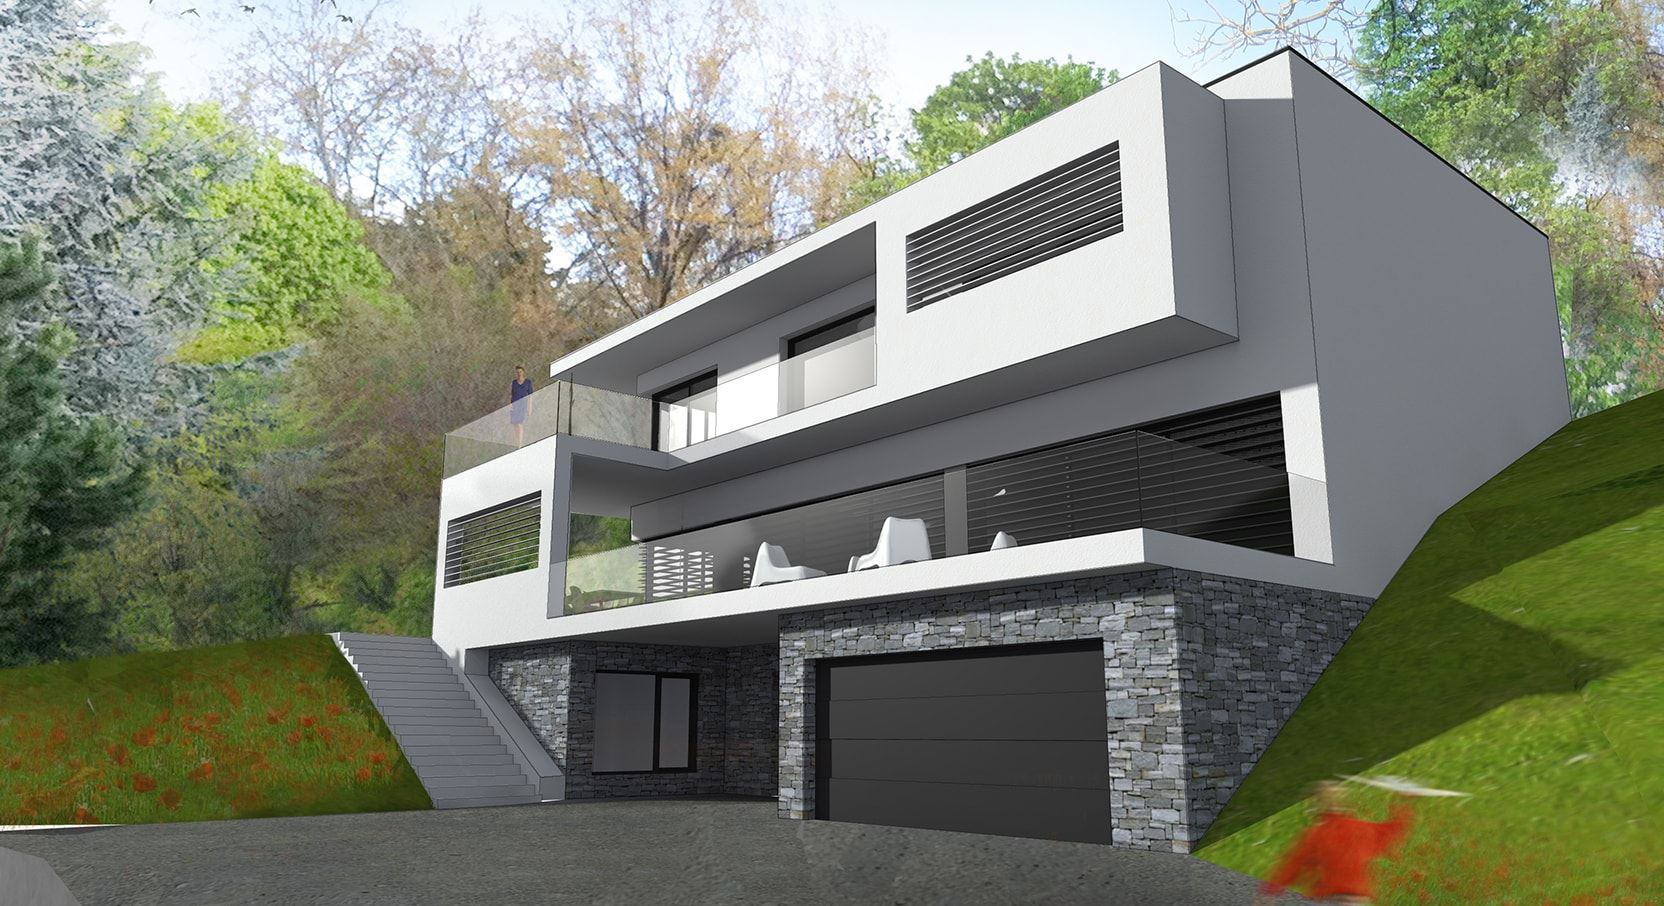 Maison contemporaine architecte mc immo - Plan de maison d architecte ...